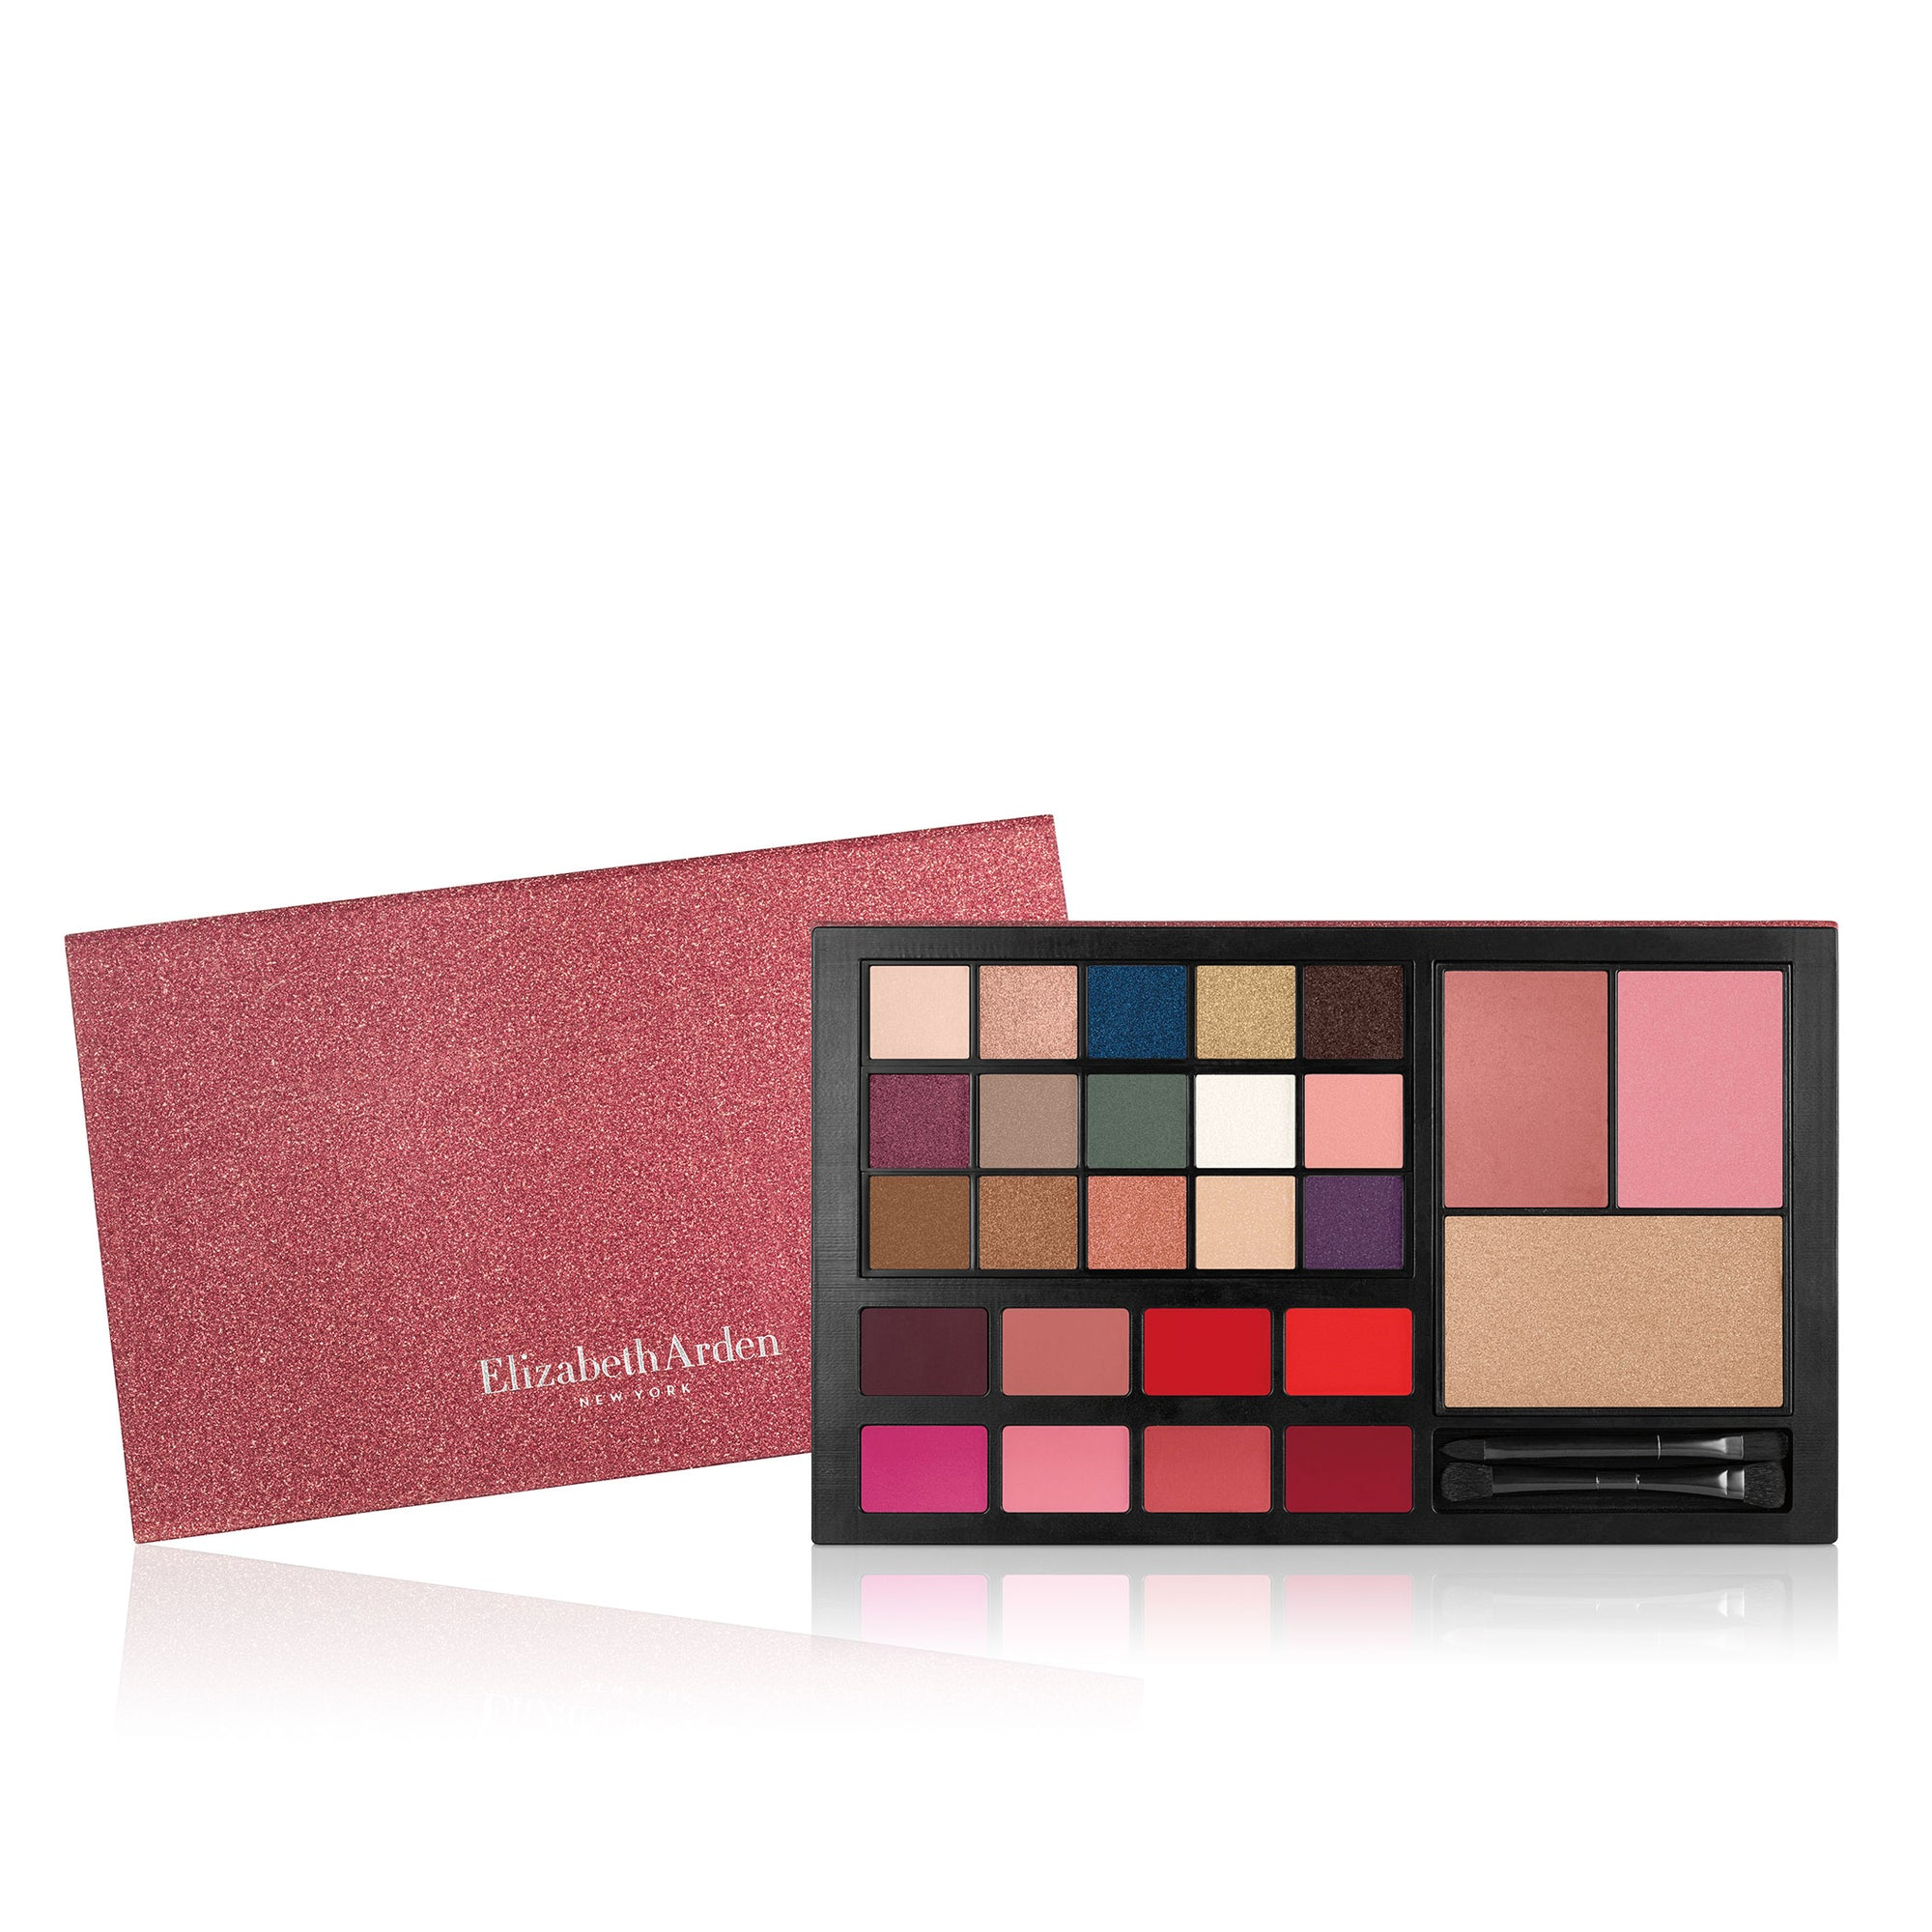 Elizabeth Arden Sparkle and Shine Colour Palette 15 Shadows